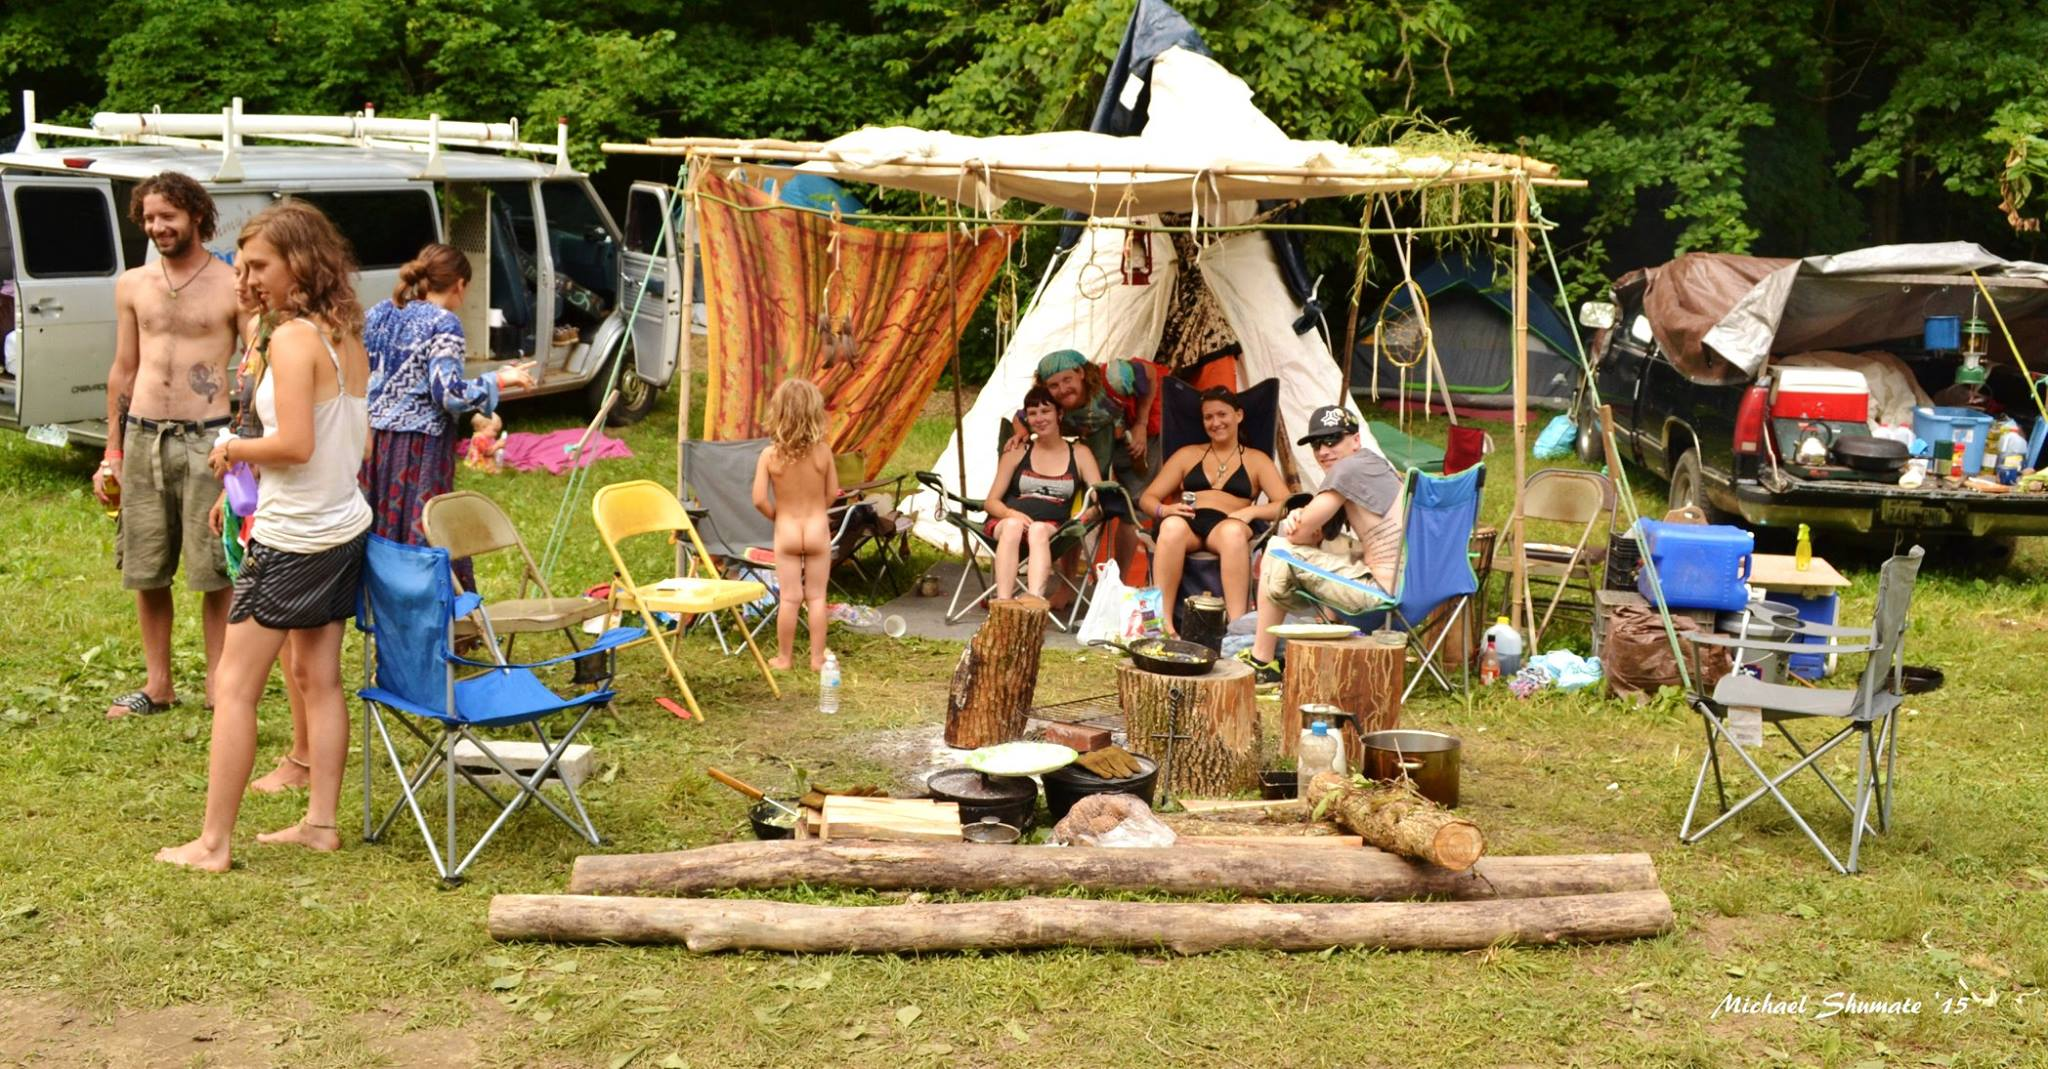 hippies, camping, butt, music festival